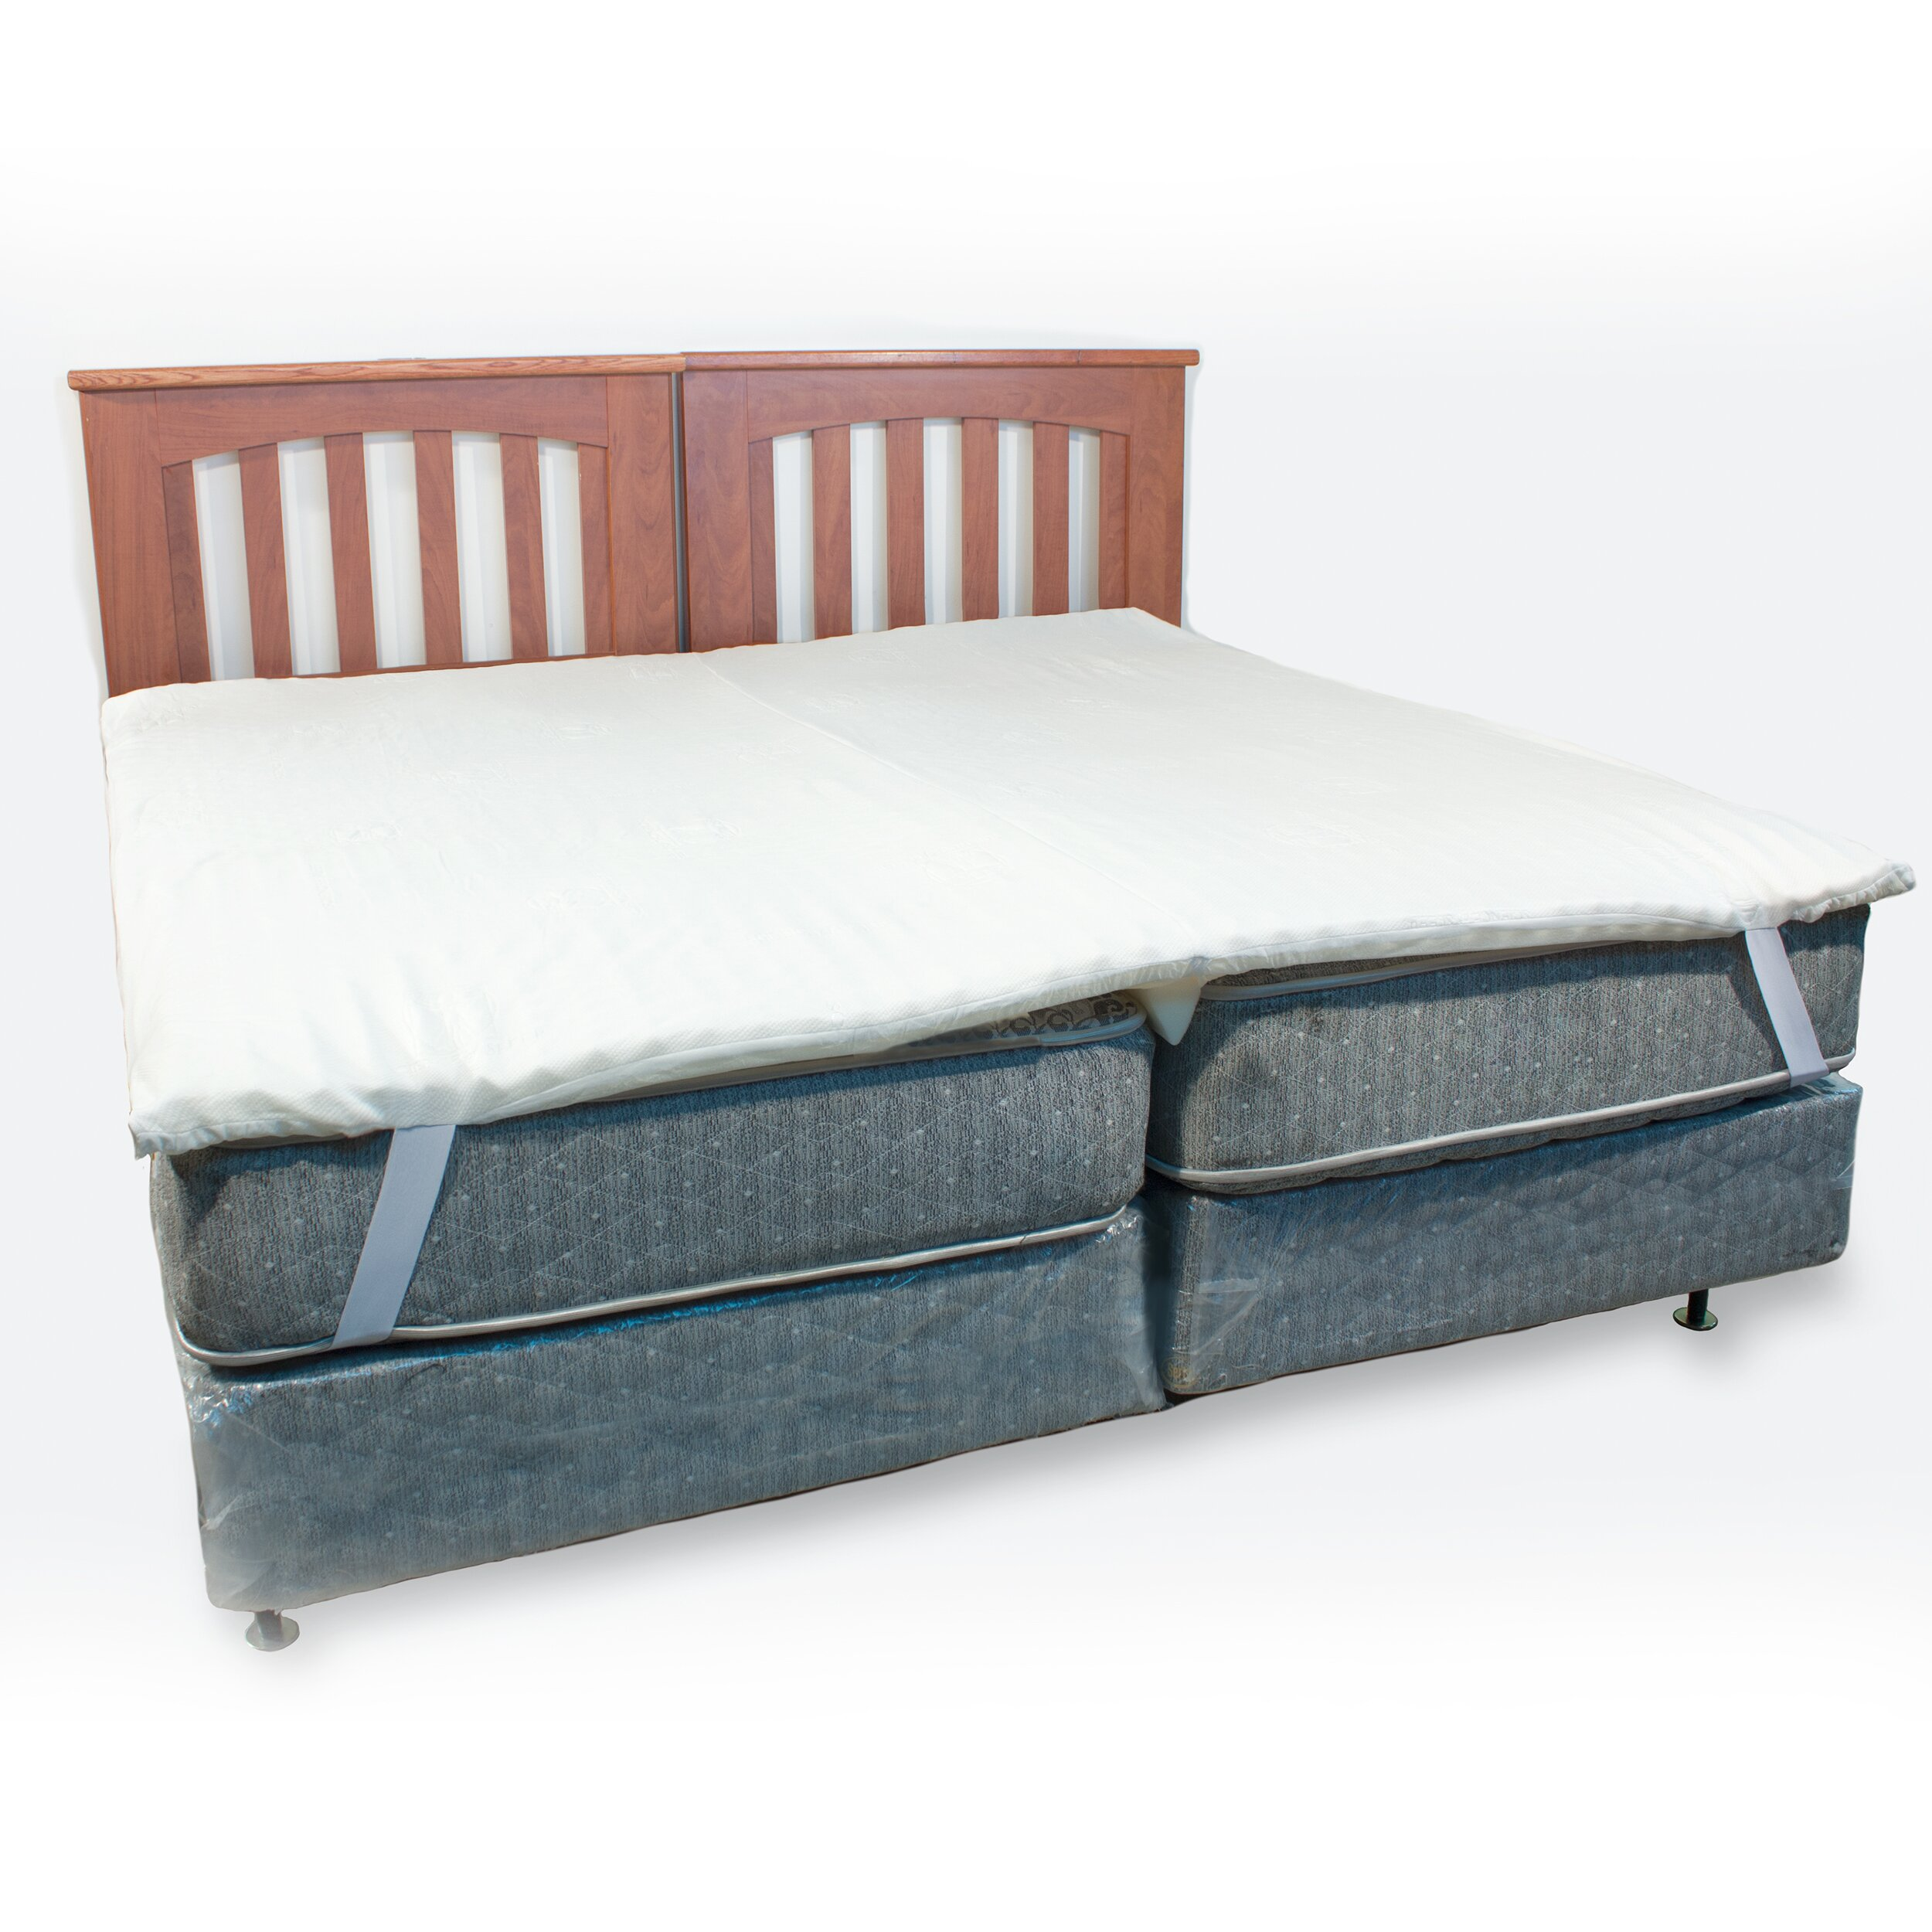 Science Of Sleep The King Maker Foam Mattress Reviews Wayfair